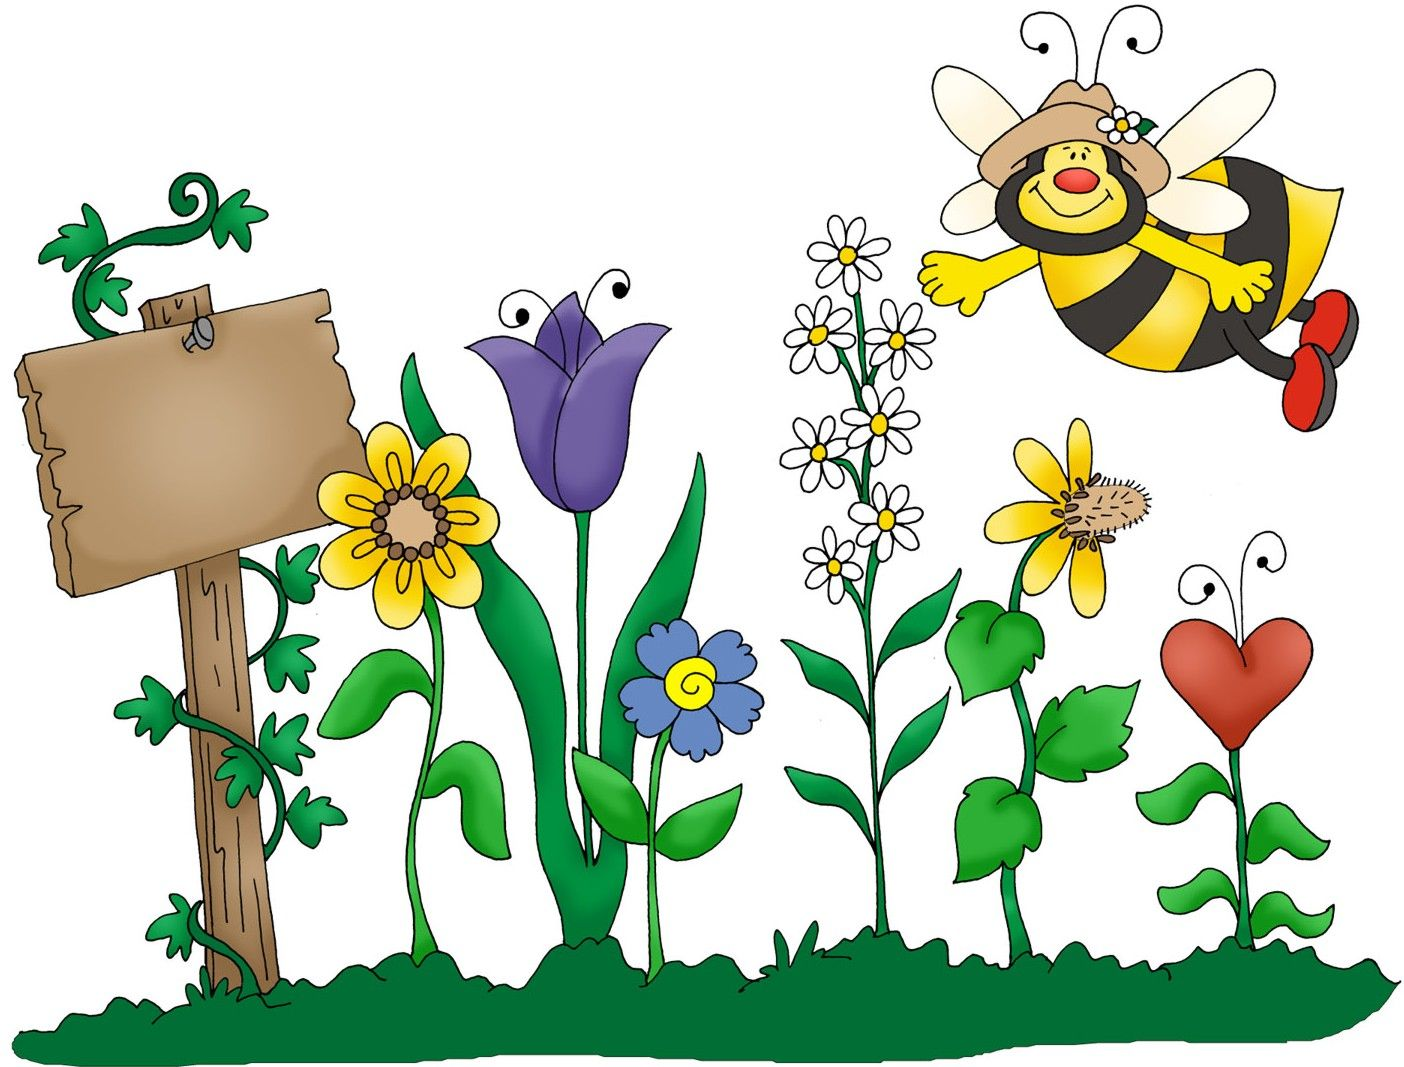 gardening clipart free clipart images clipartix garden club rh pinterest com free black and white gardening clipart free black and white gardening clipart